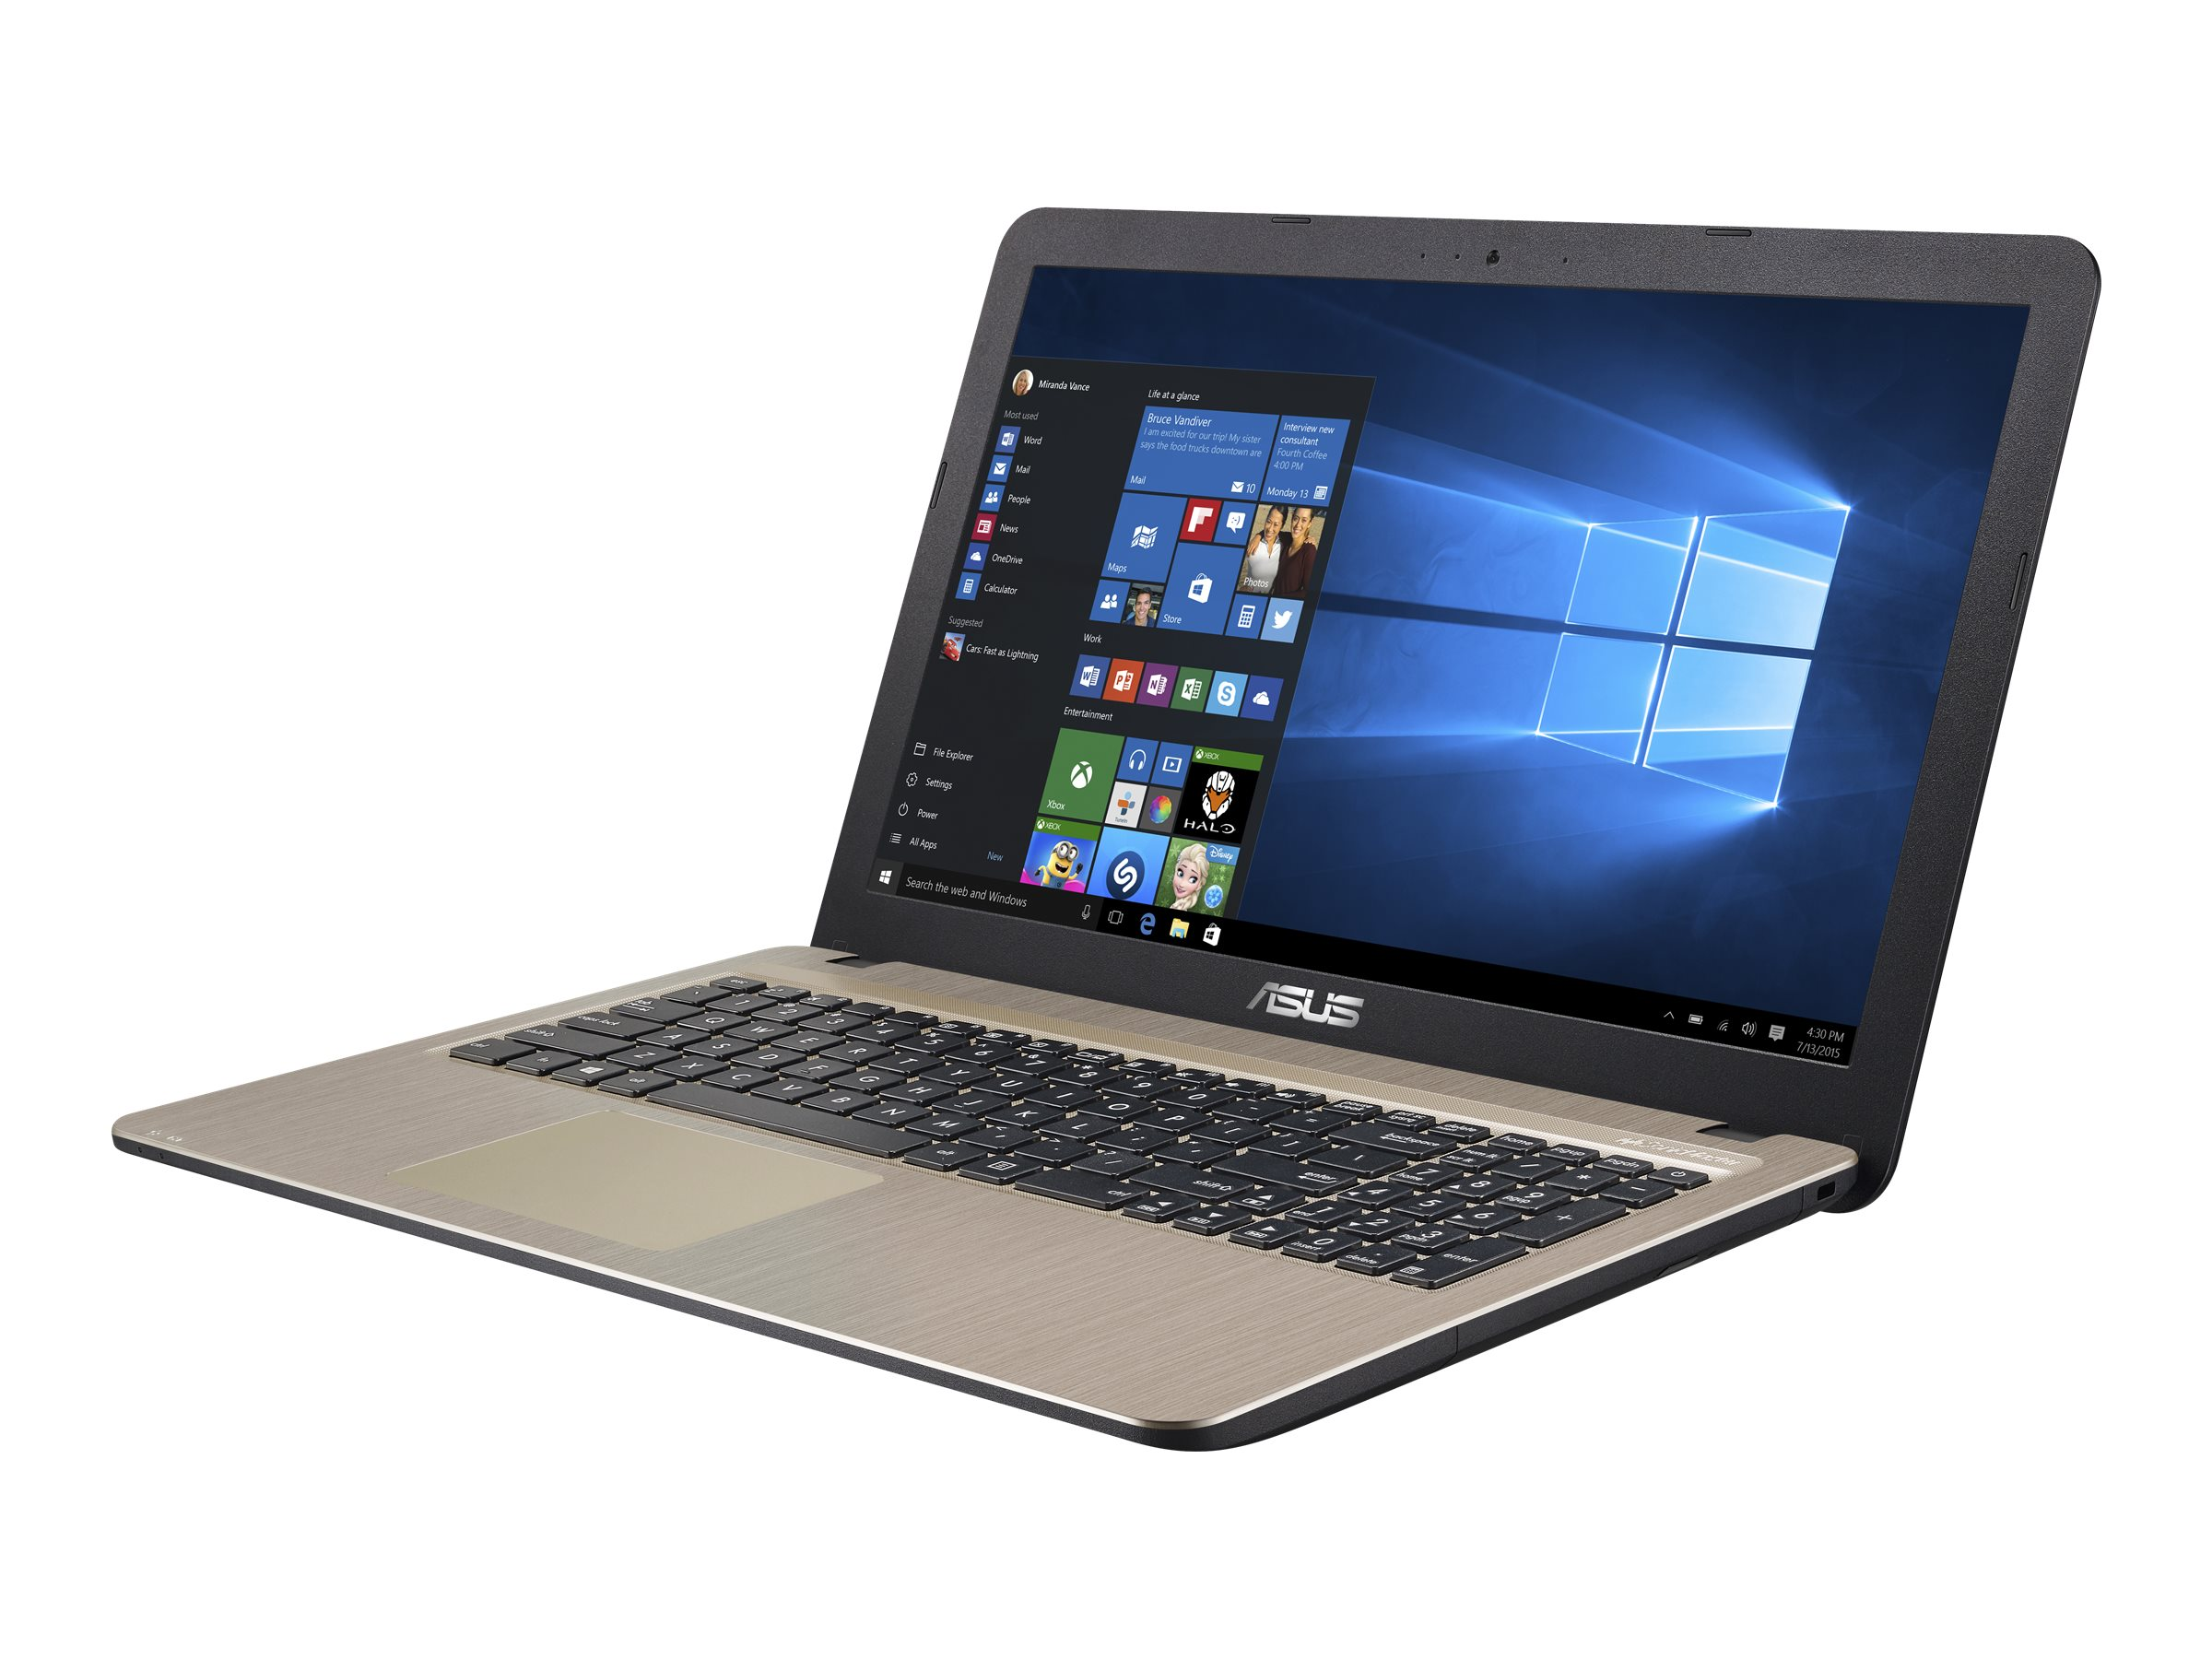 Asus Notebook PC Celeron N3050 4GB 500GB 15.6, 90NB0B31-M01140